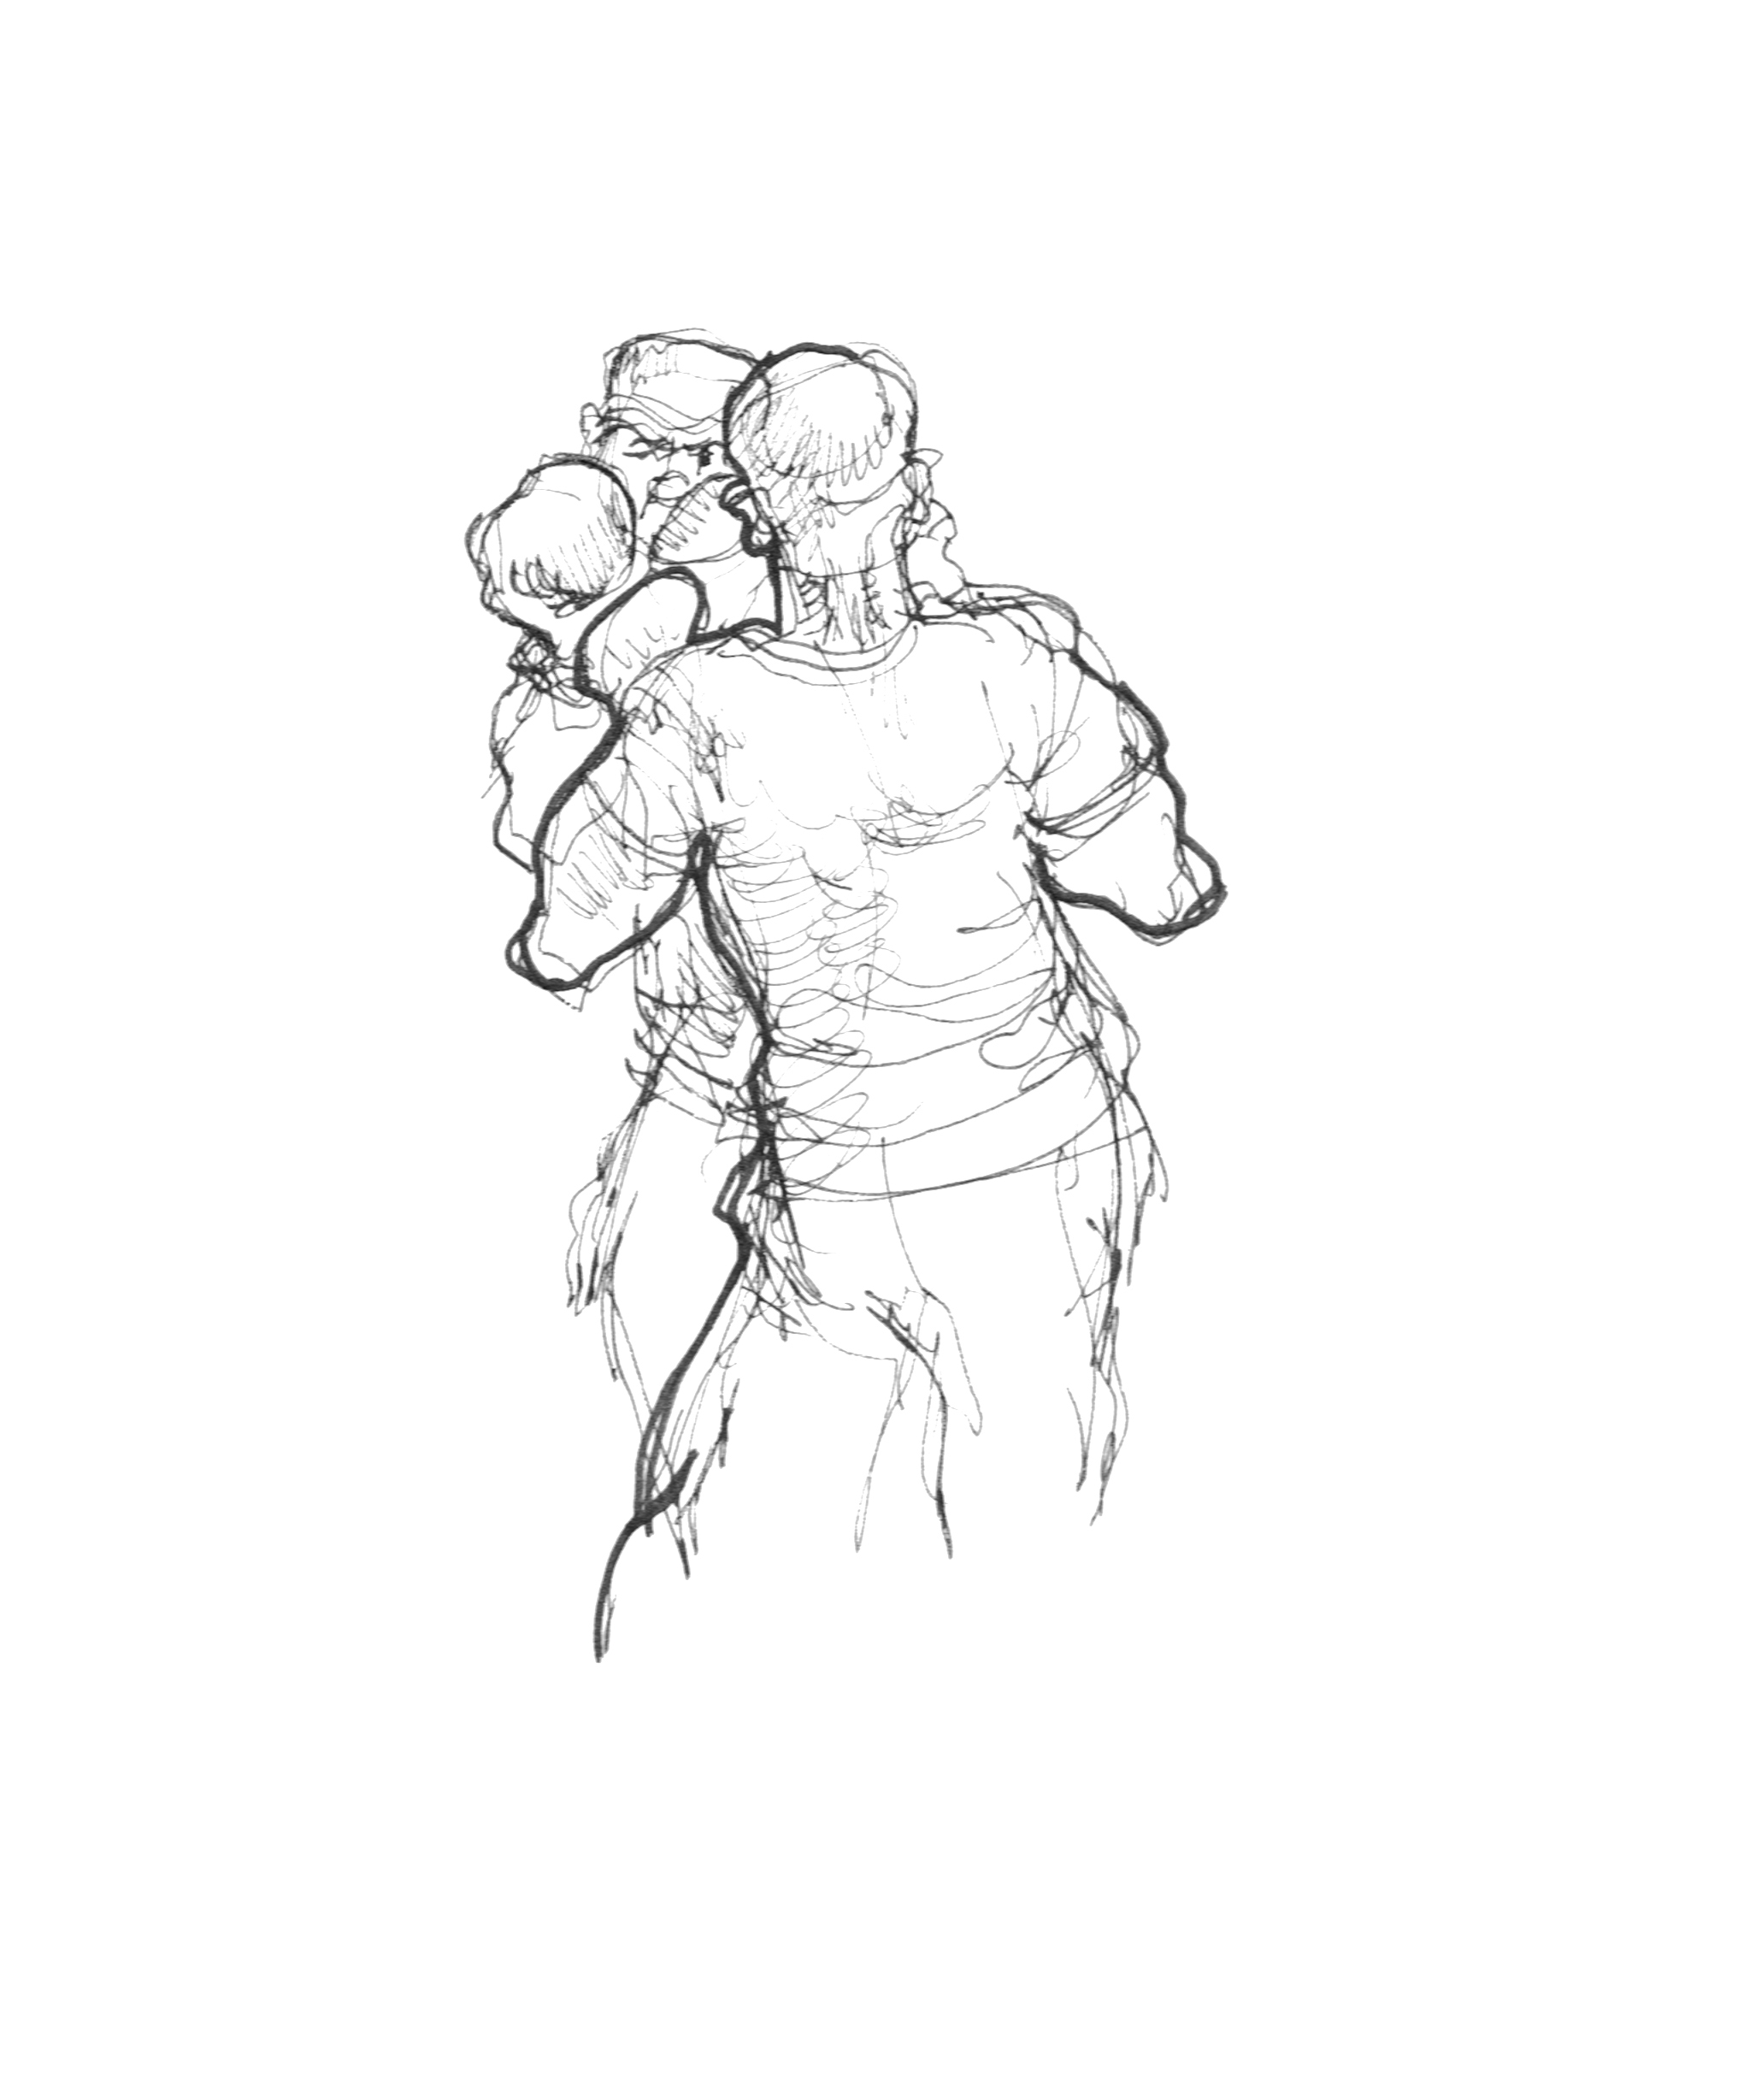 2040x2456 Dai's Reportage Drawing People In Action Boxing